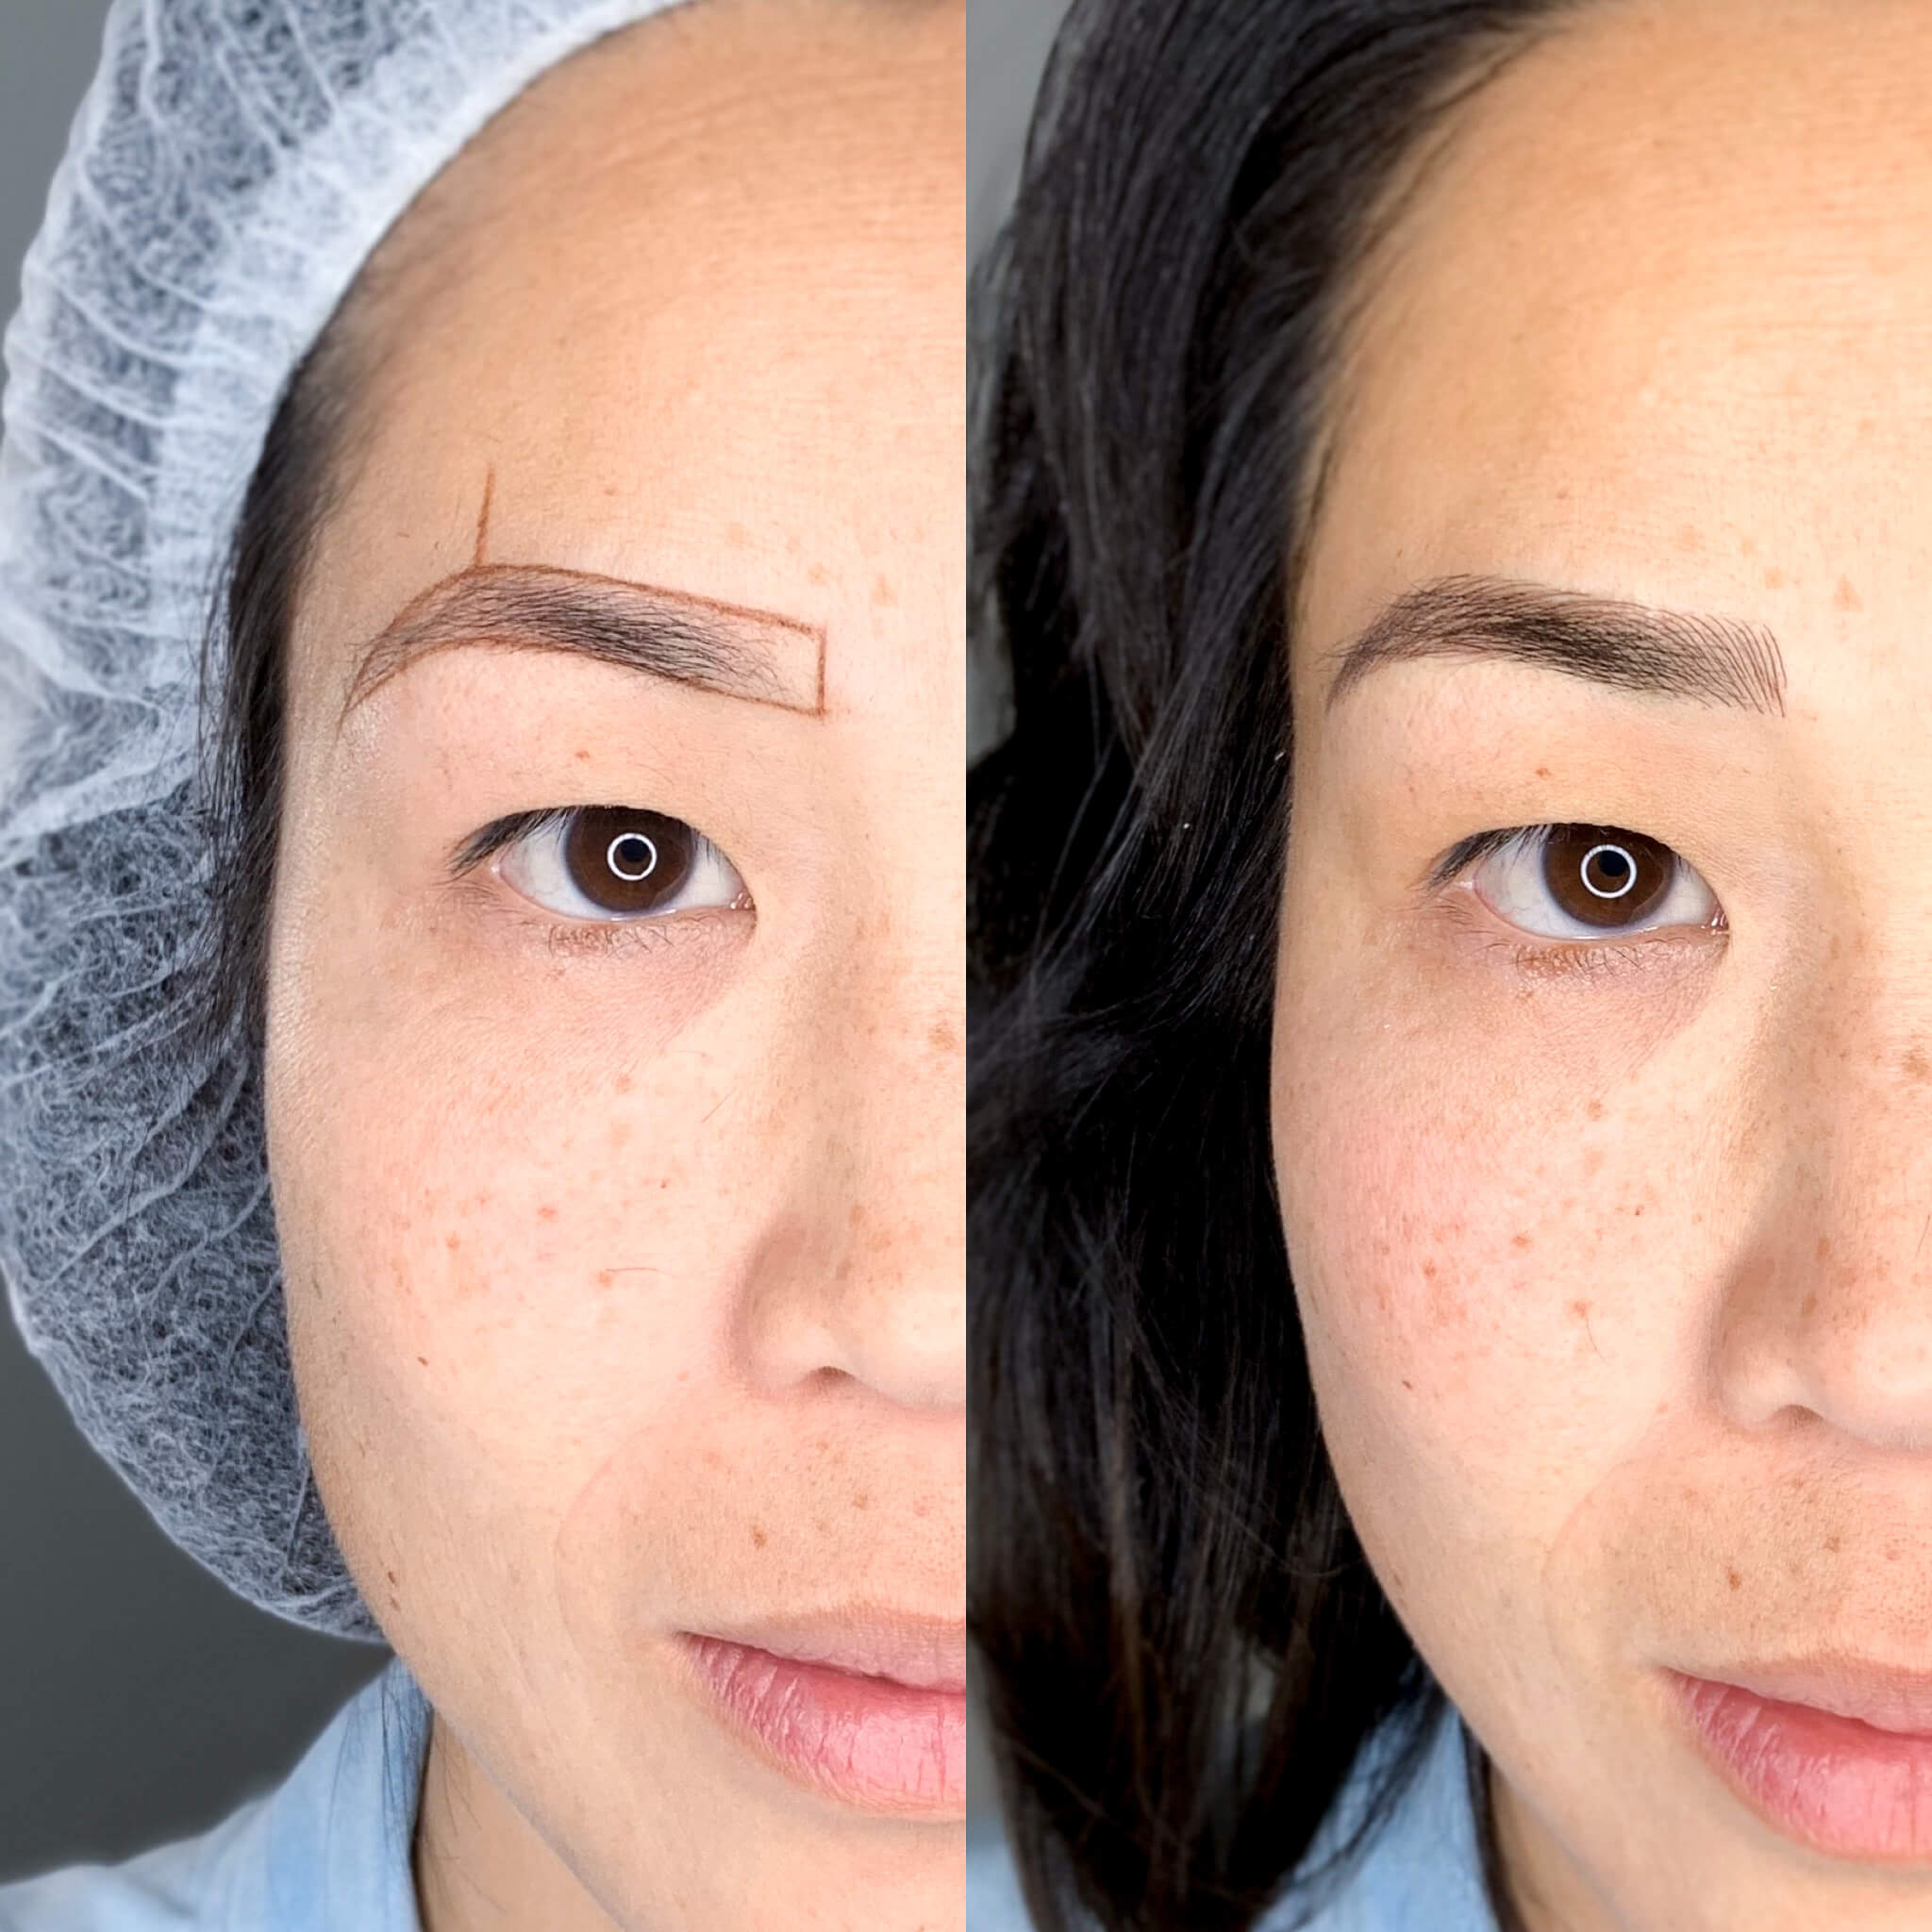 Eyewonderlust Expectations of Eyebrow Feathering Blog - Comparing Eyebrows Before and After Eyebrow Feathering, Microblading and Prices